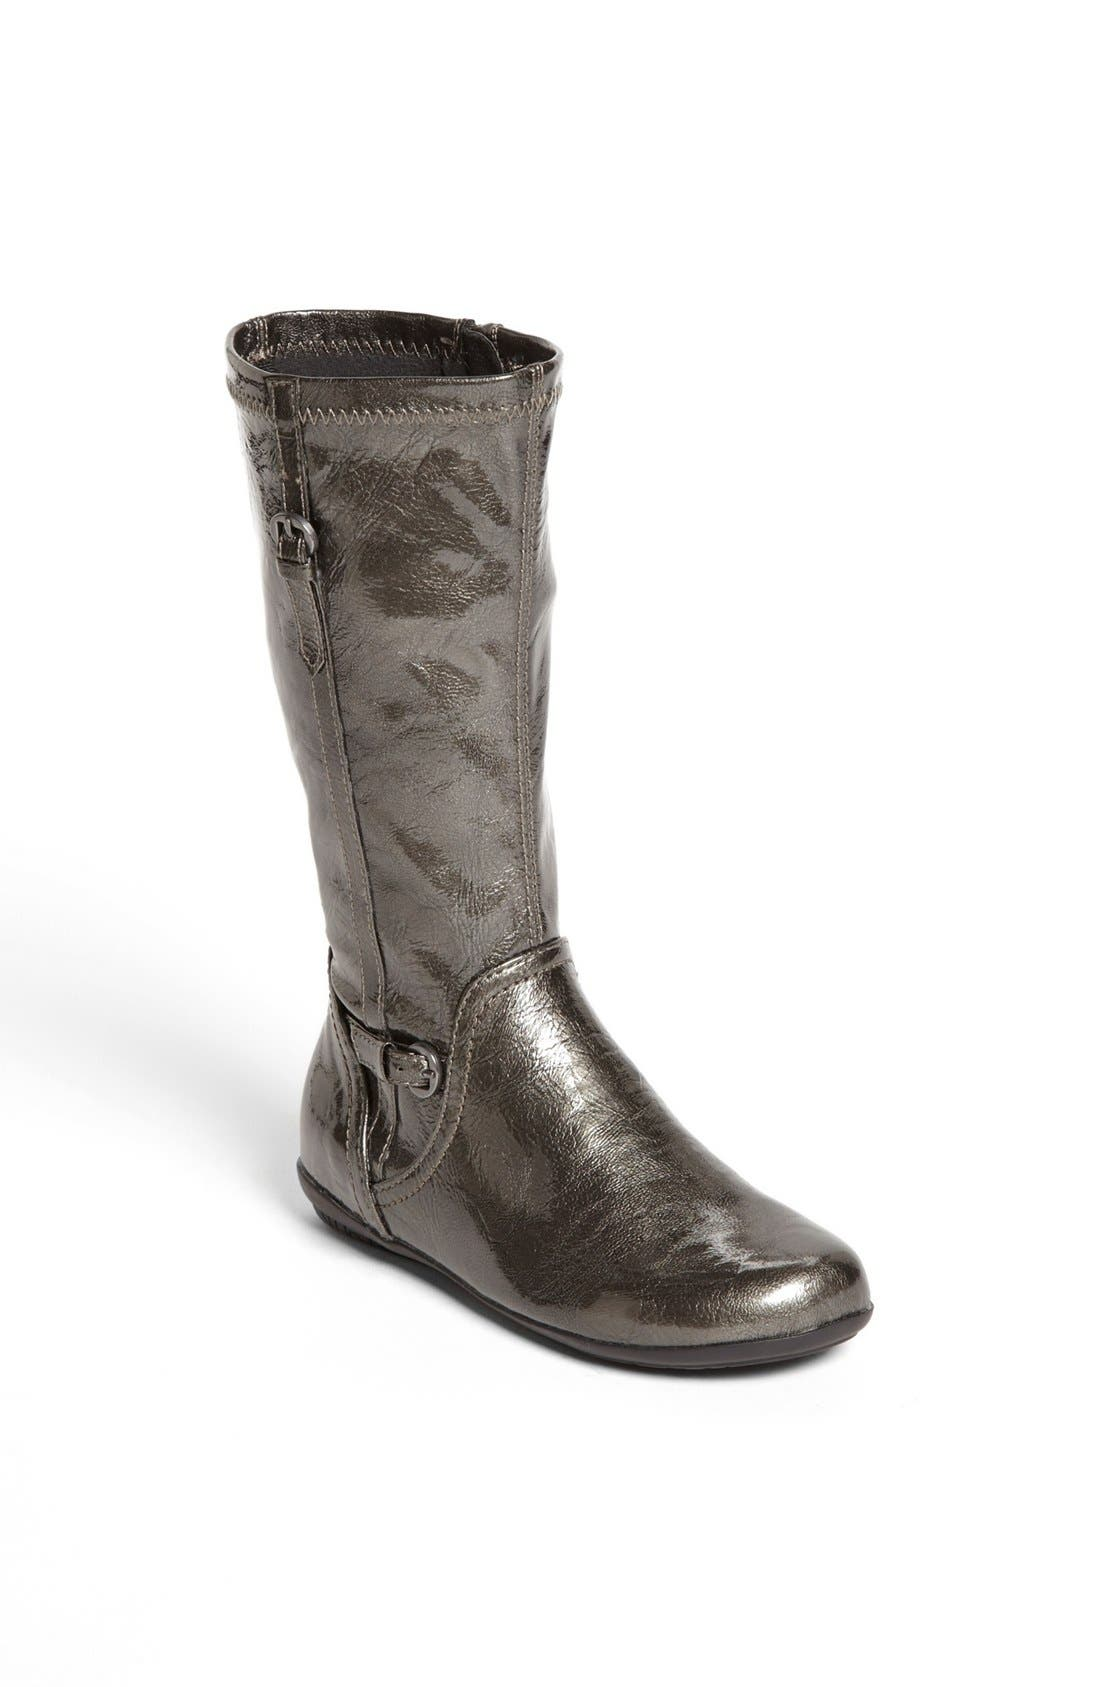 Alternate Image 1 Selected - Nordstrom 'Caden' Stretch Boot (Walker, Toddler, Little Kid & Big Kid)